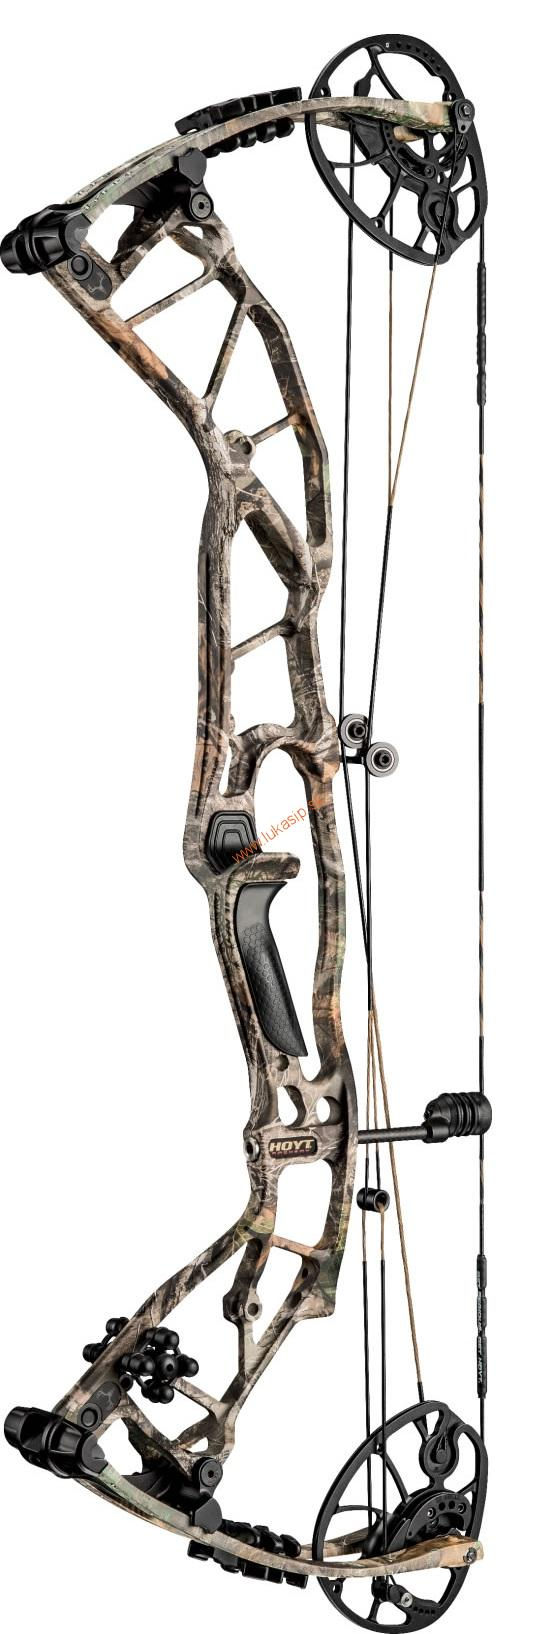 "Hoyt 2018 Hyper Force RH 55 - 65# 27""-30"" Realtree Edge"